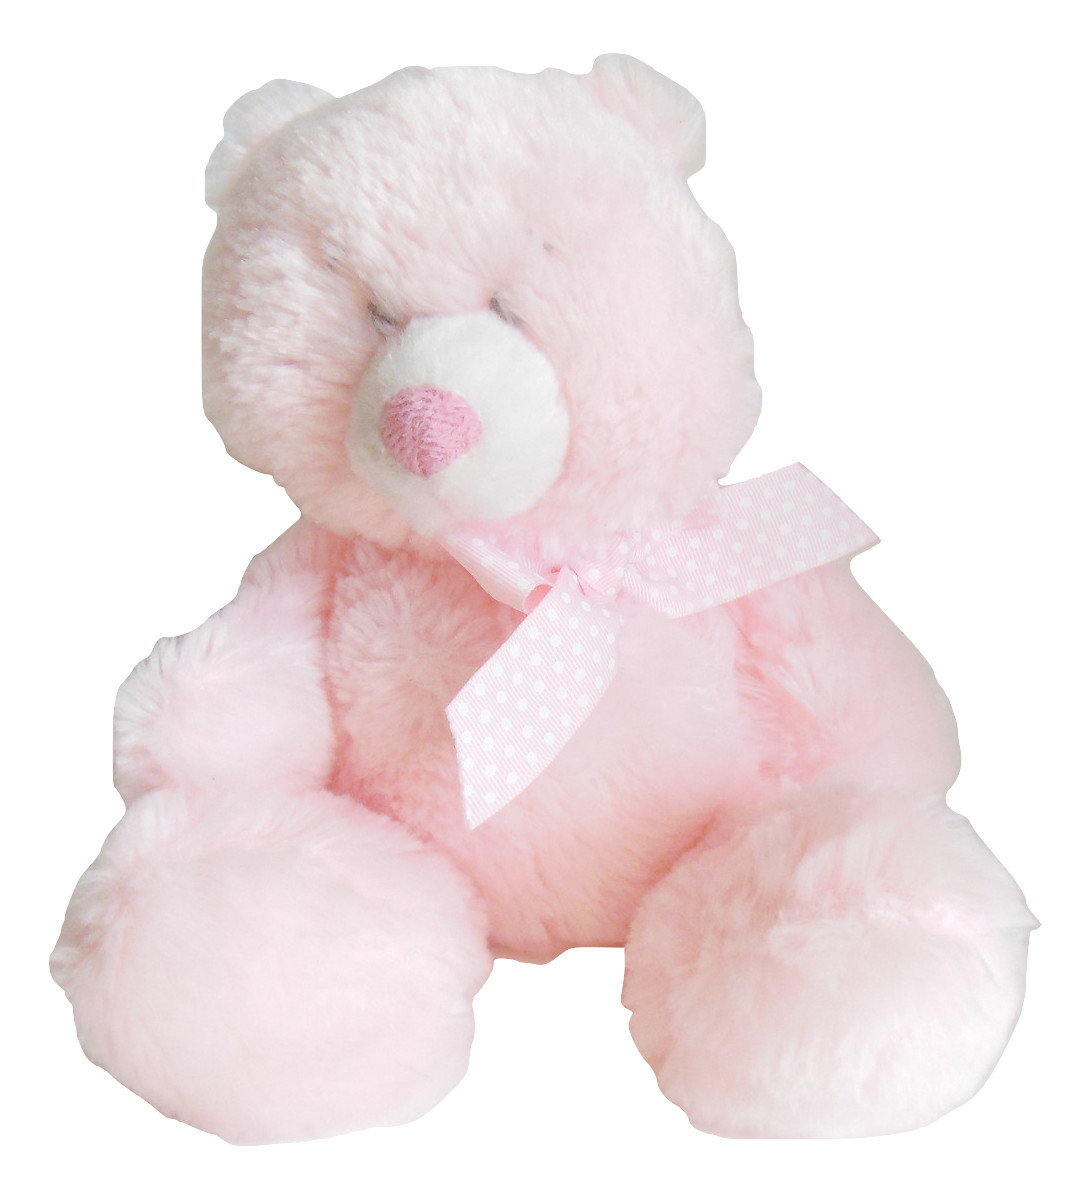 Primary image for Baby Ganz Girls Pink Stuffed Plush Animal Toy Rattle Squeezable Polka Dot Bow